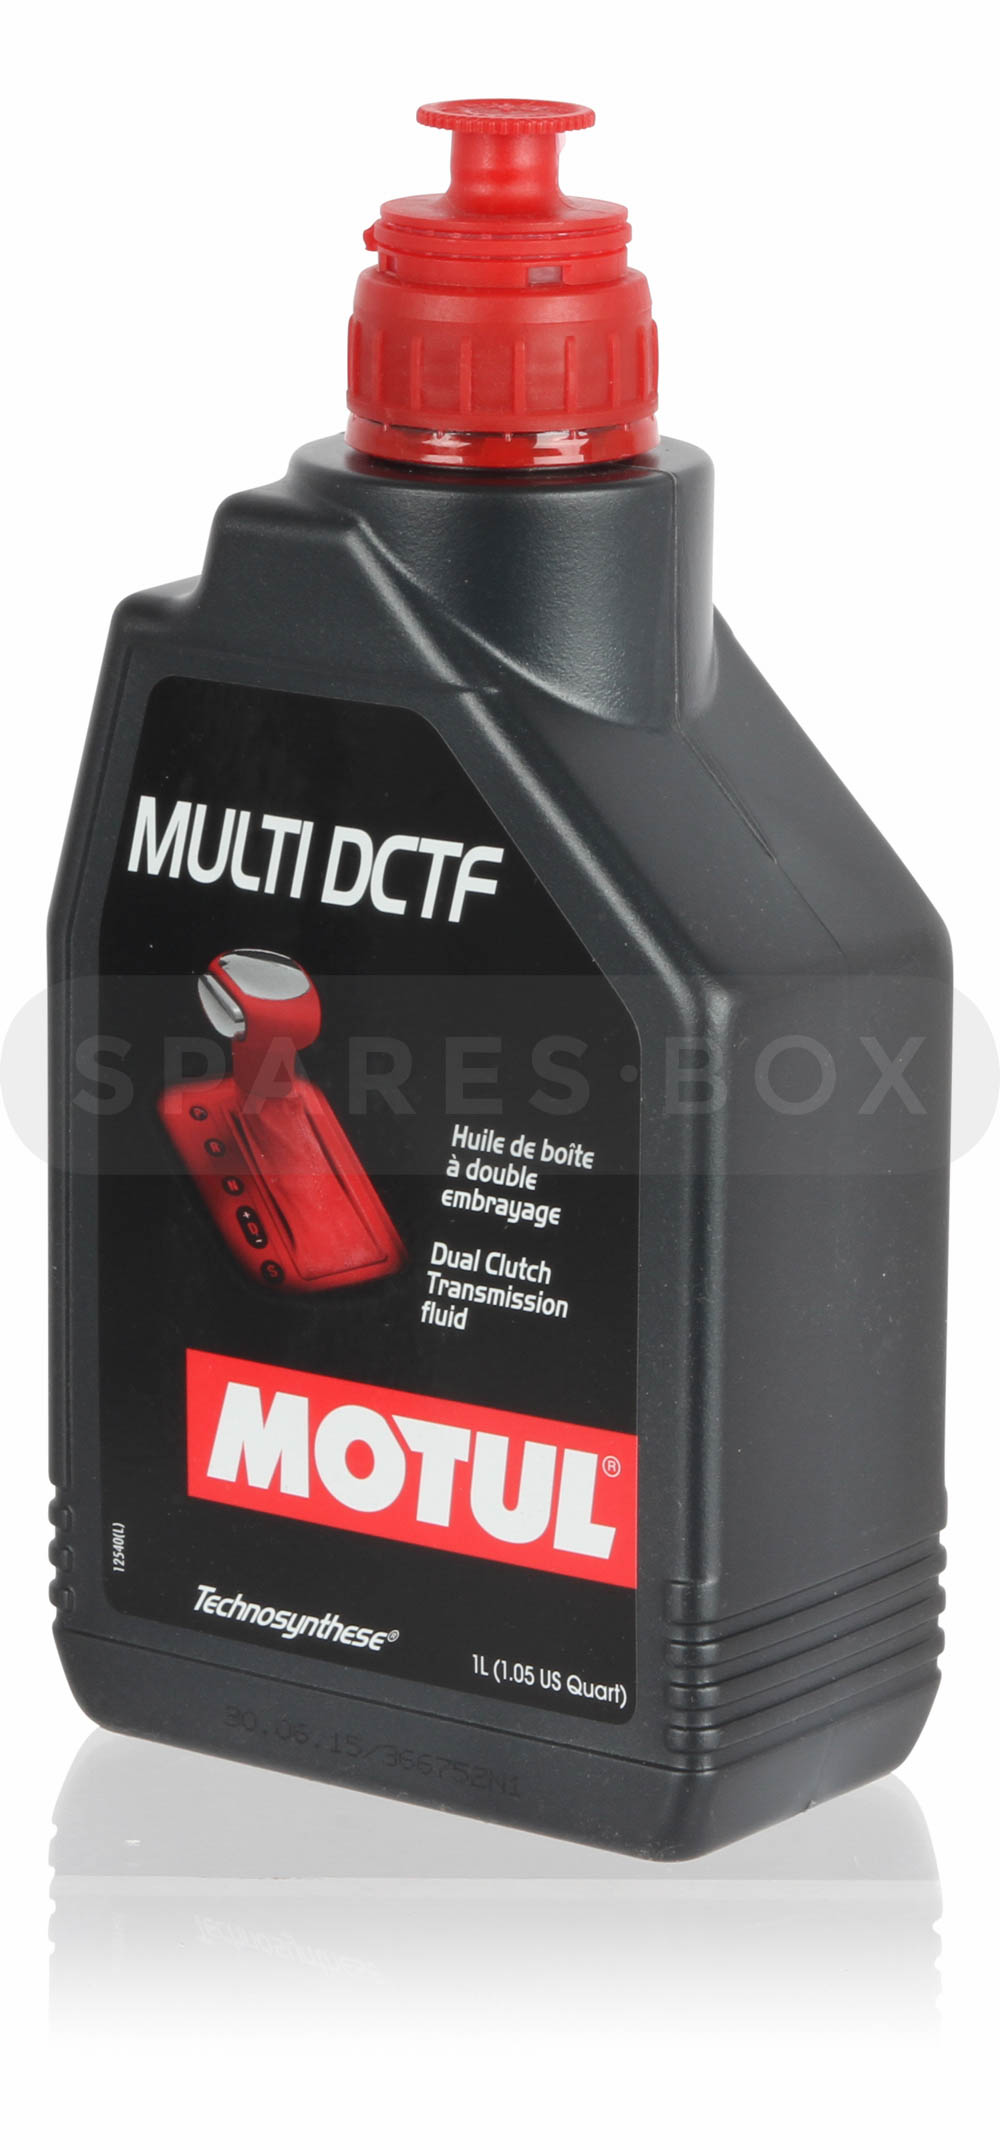 motul multi dctf transmission fluid 1l ebay. Black Bedroom Furniture Sets. Home Design Ideas